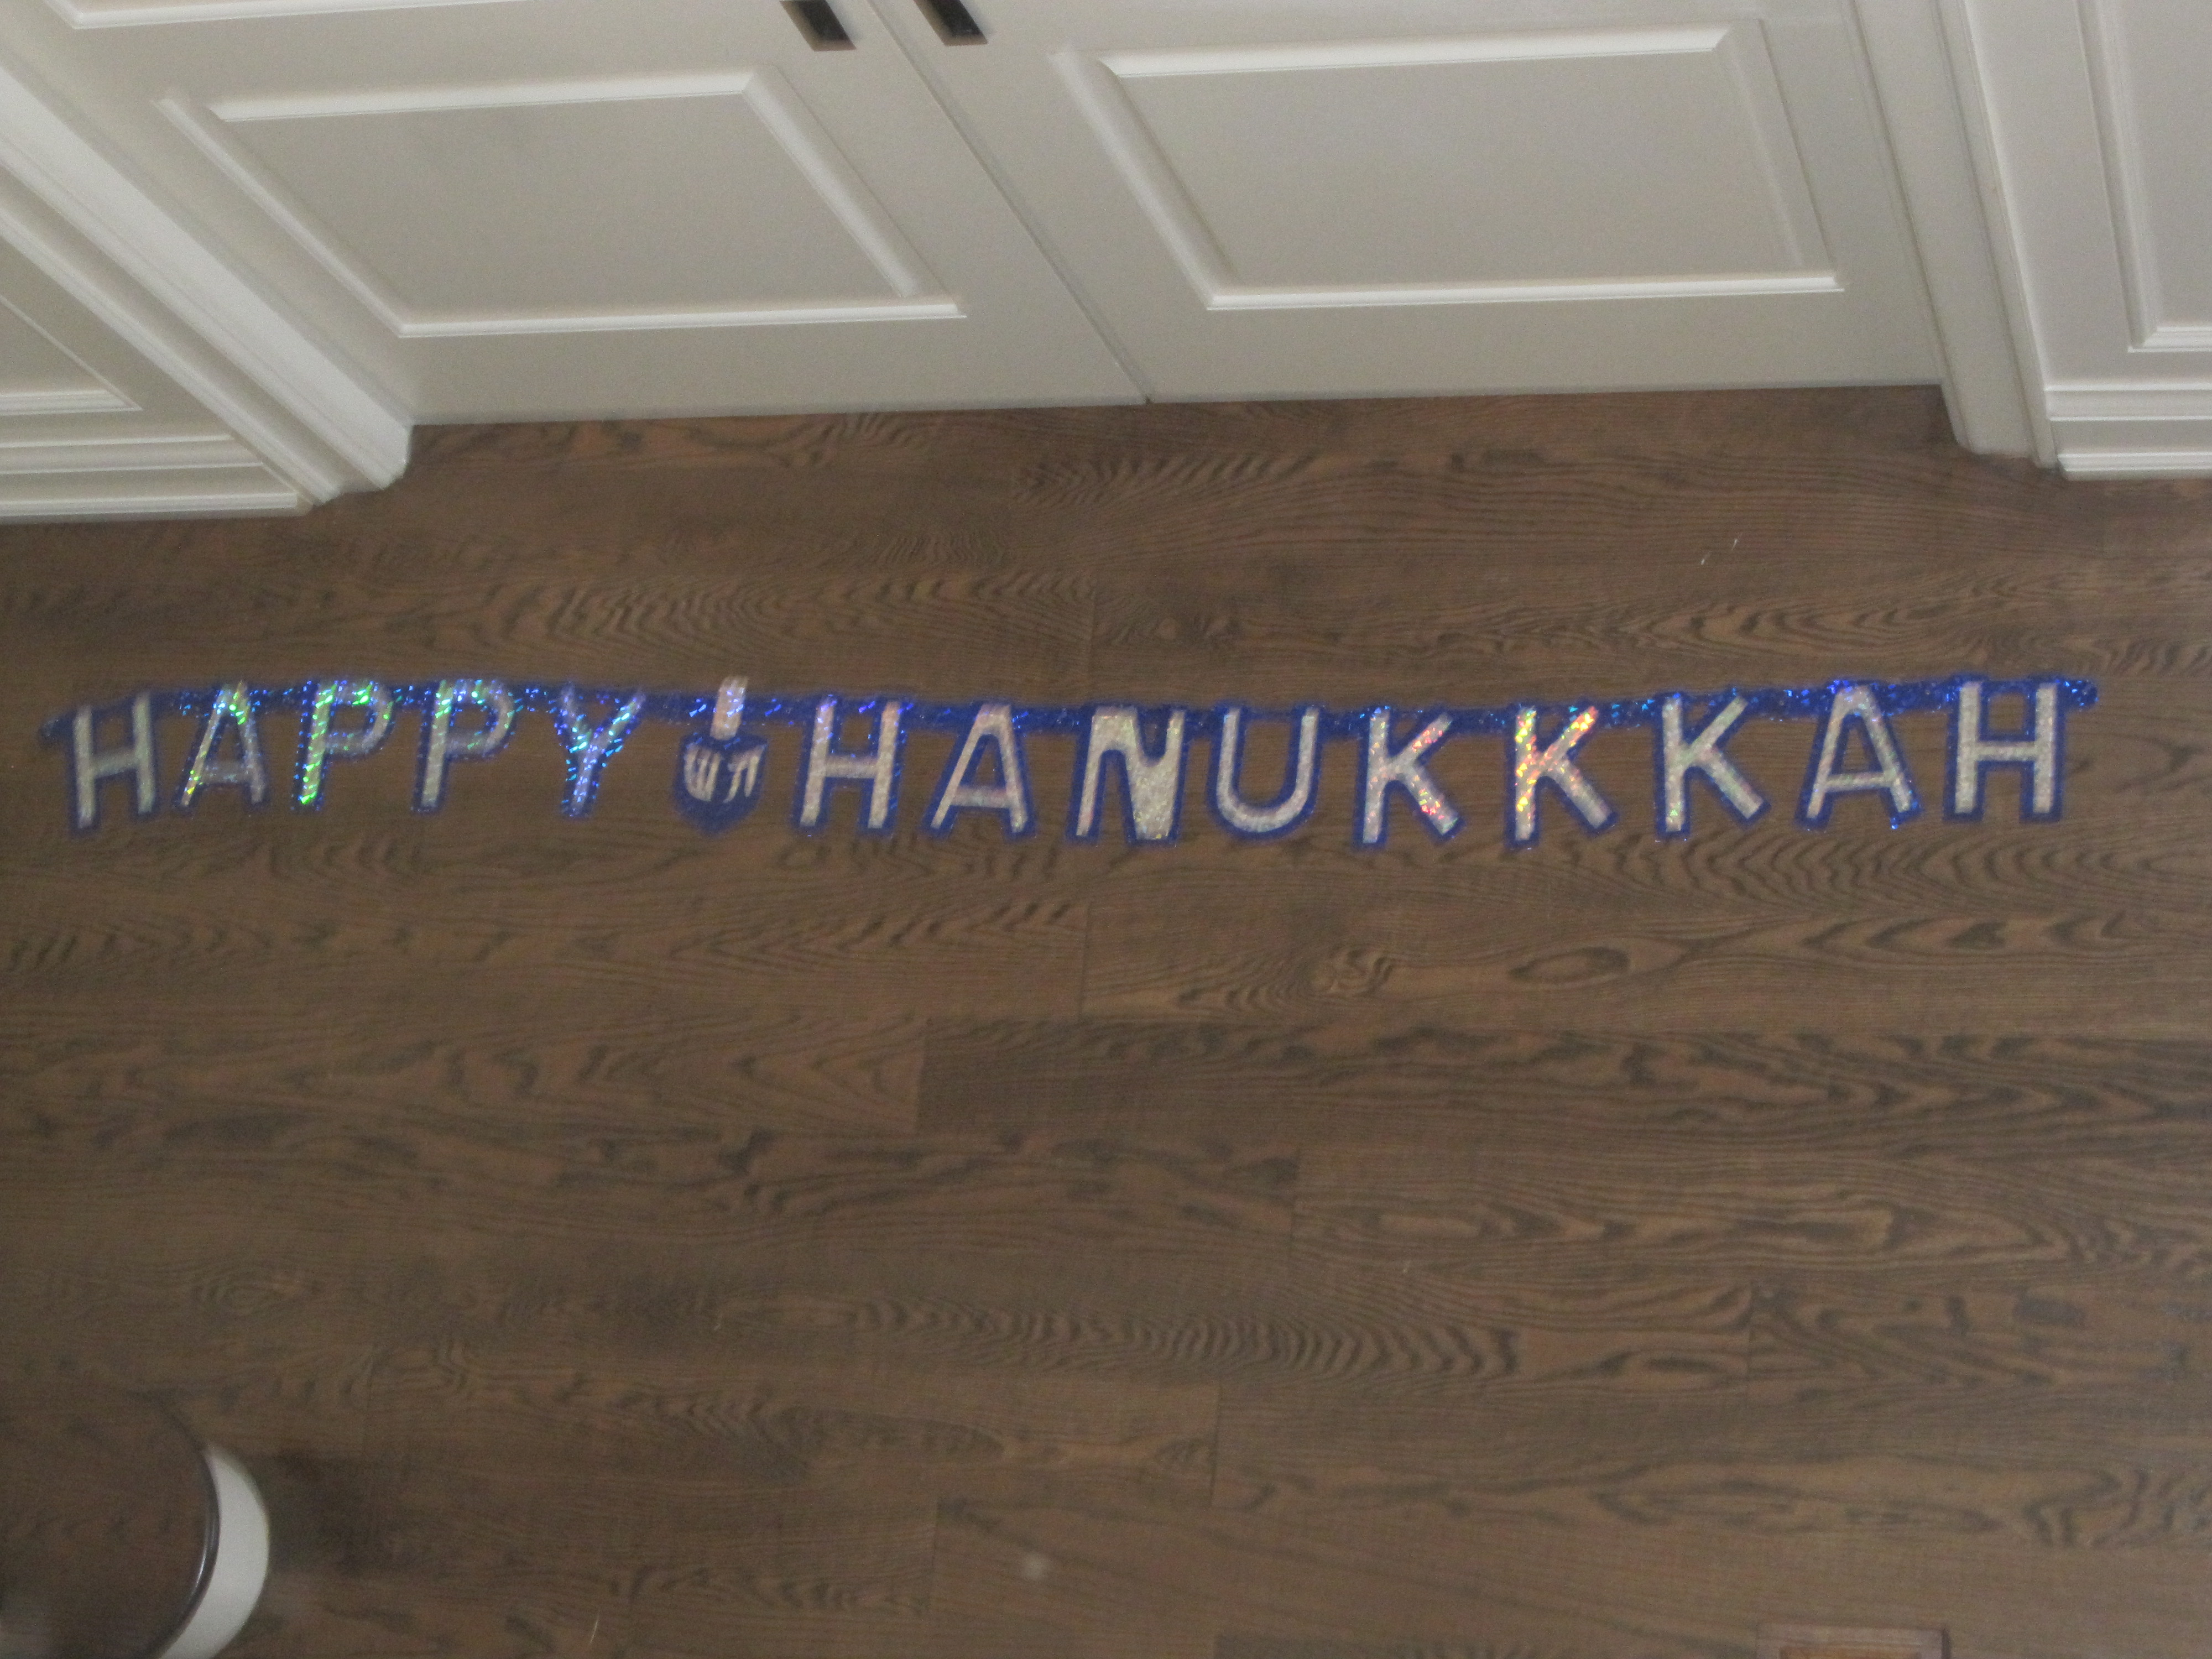 When Hanukkah gets infiltrated by racists...